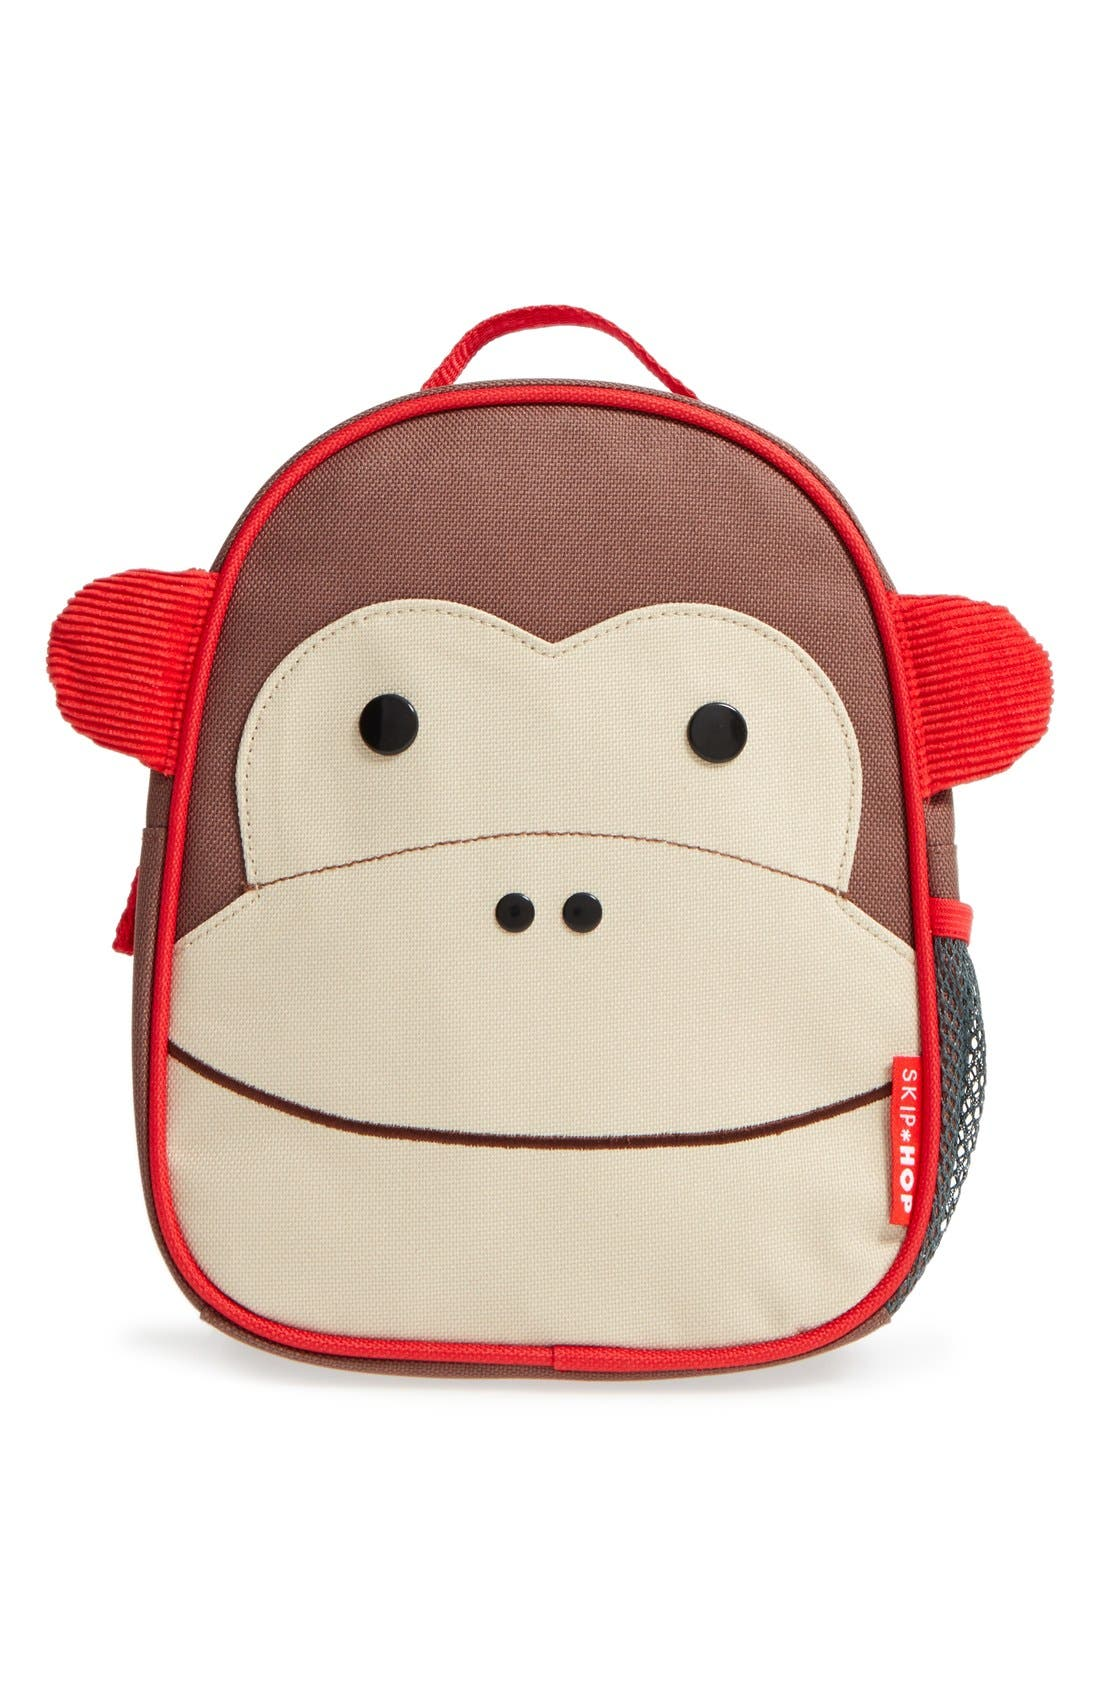 'Zoo' Safety Harness Backpack,                         Main,                         color, MONKEY